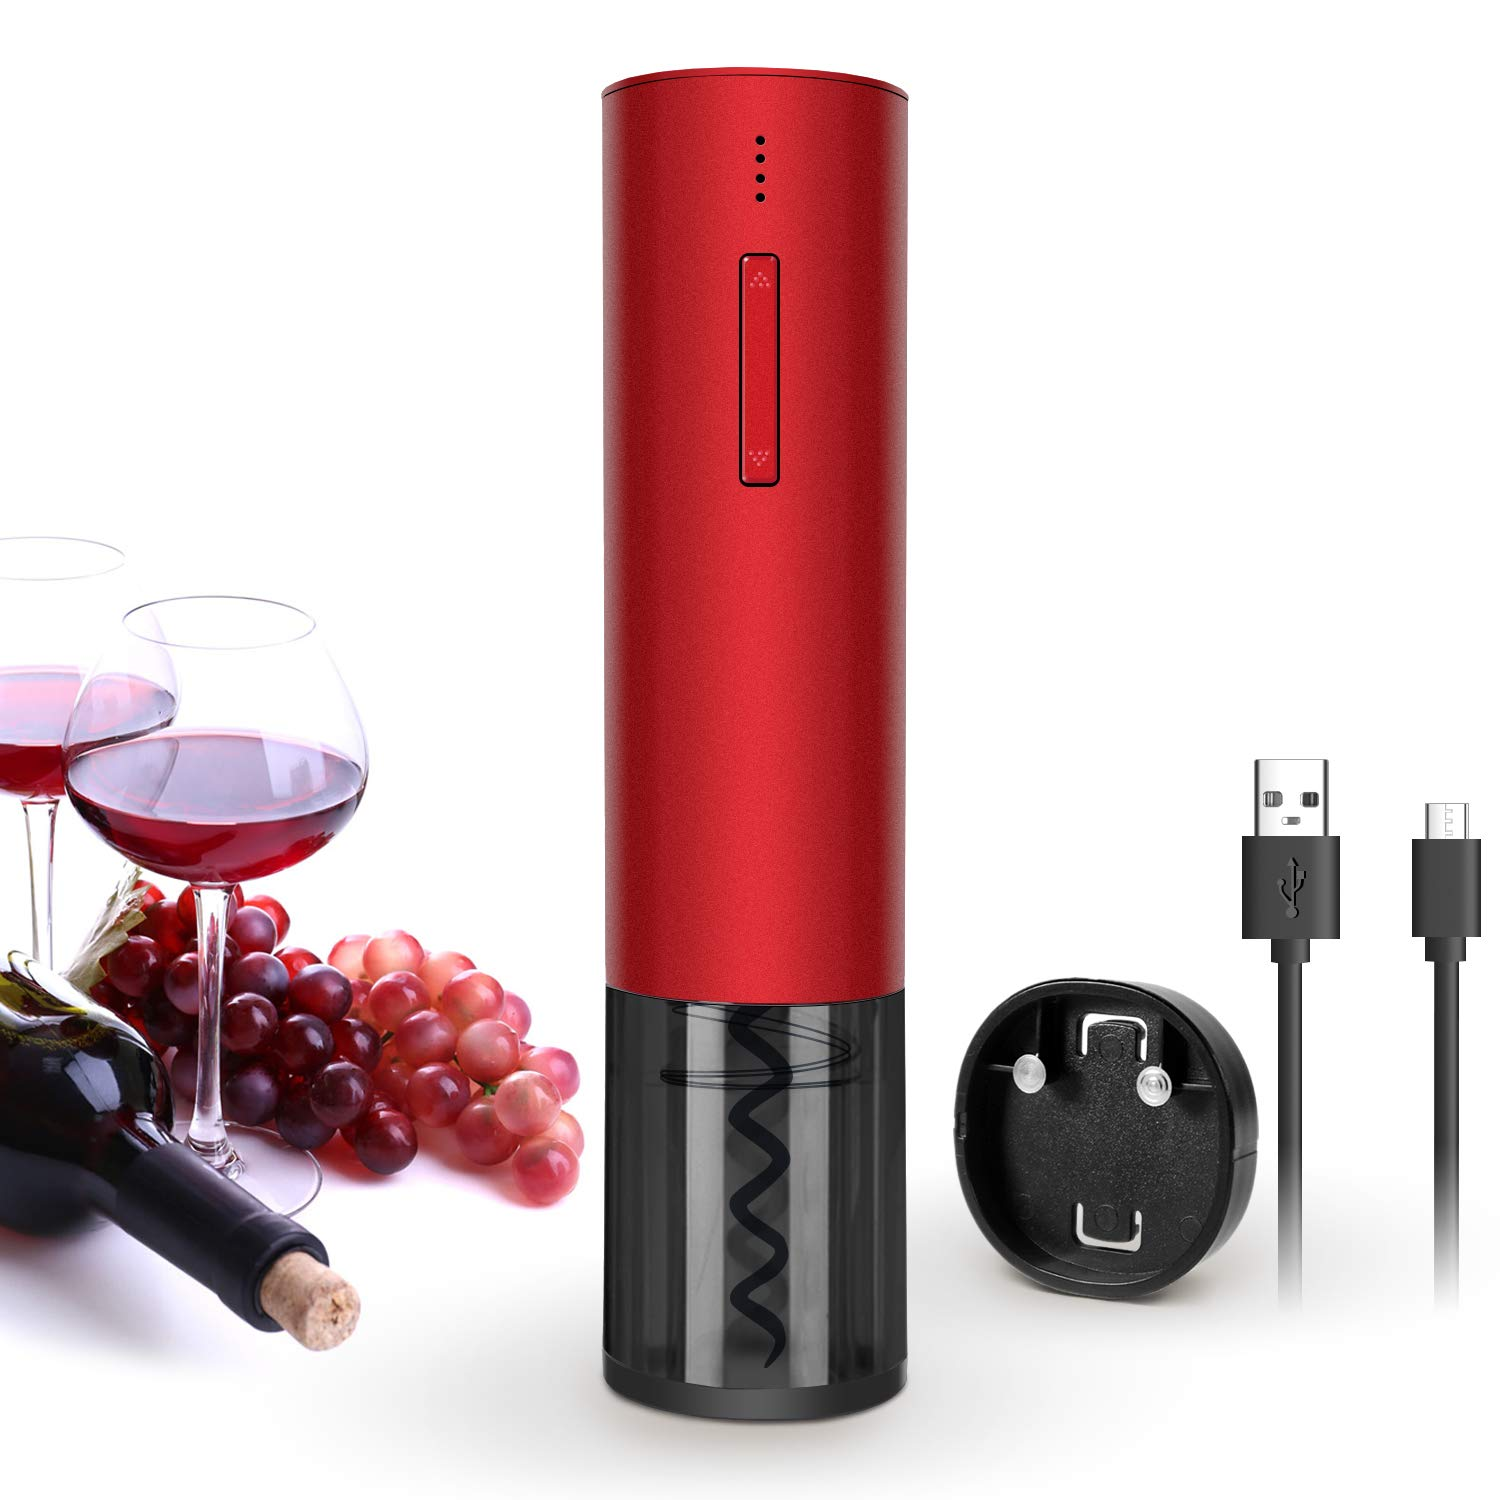 New Electric Wine Opener Rechargeable Automatic Corkscrew Wine Bottle Openers, Cordless Stainless Electric Corkscrew with Foil Cutter and USB Cable